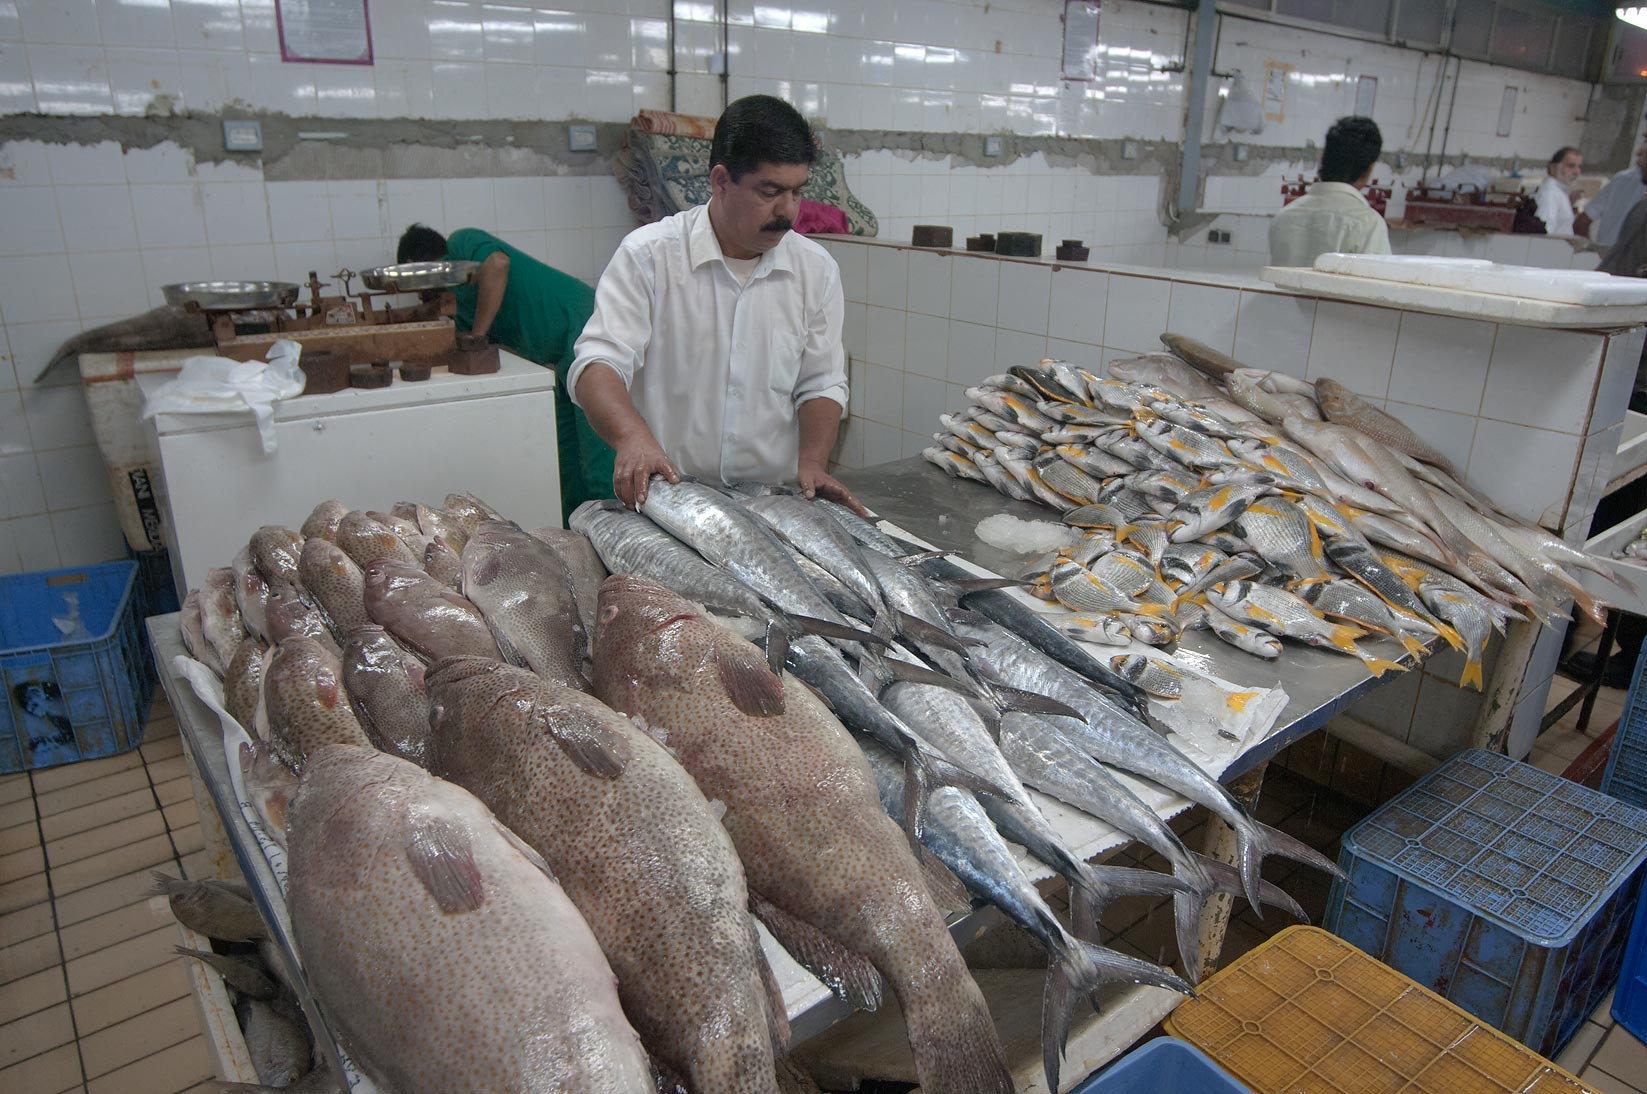 Vendor in Central Fish Market. Doha, Qatar